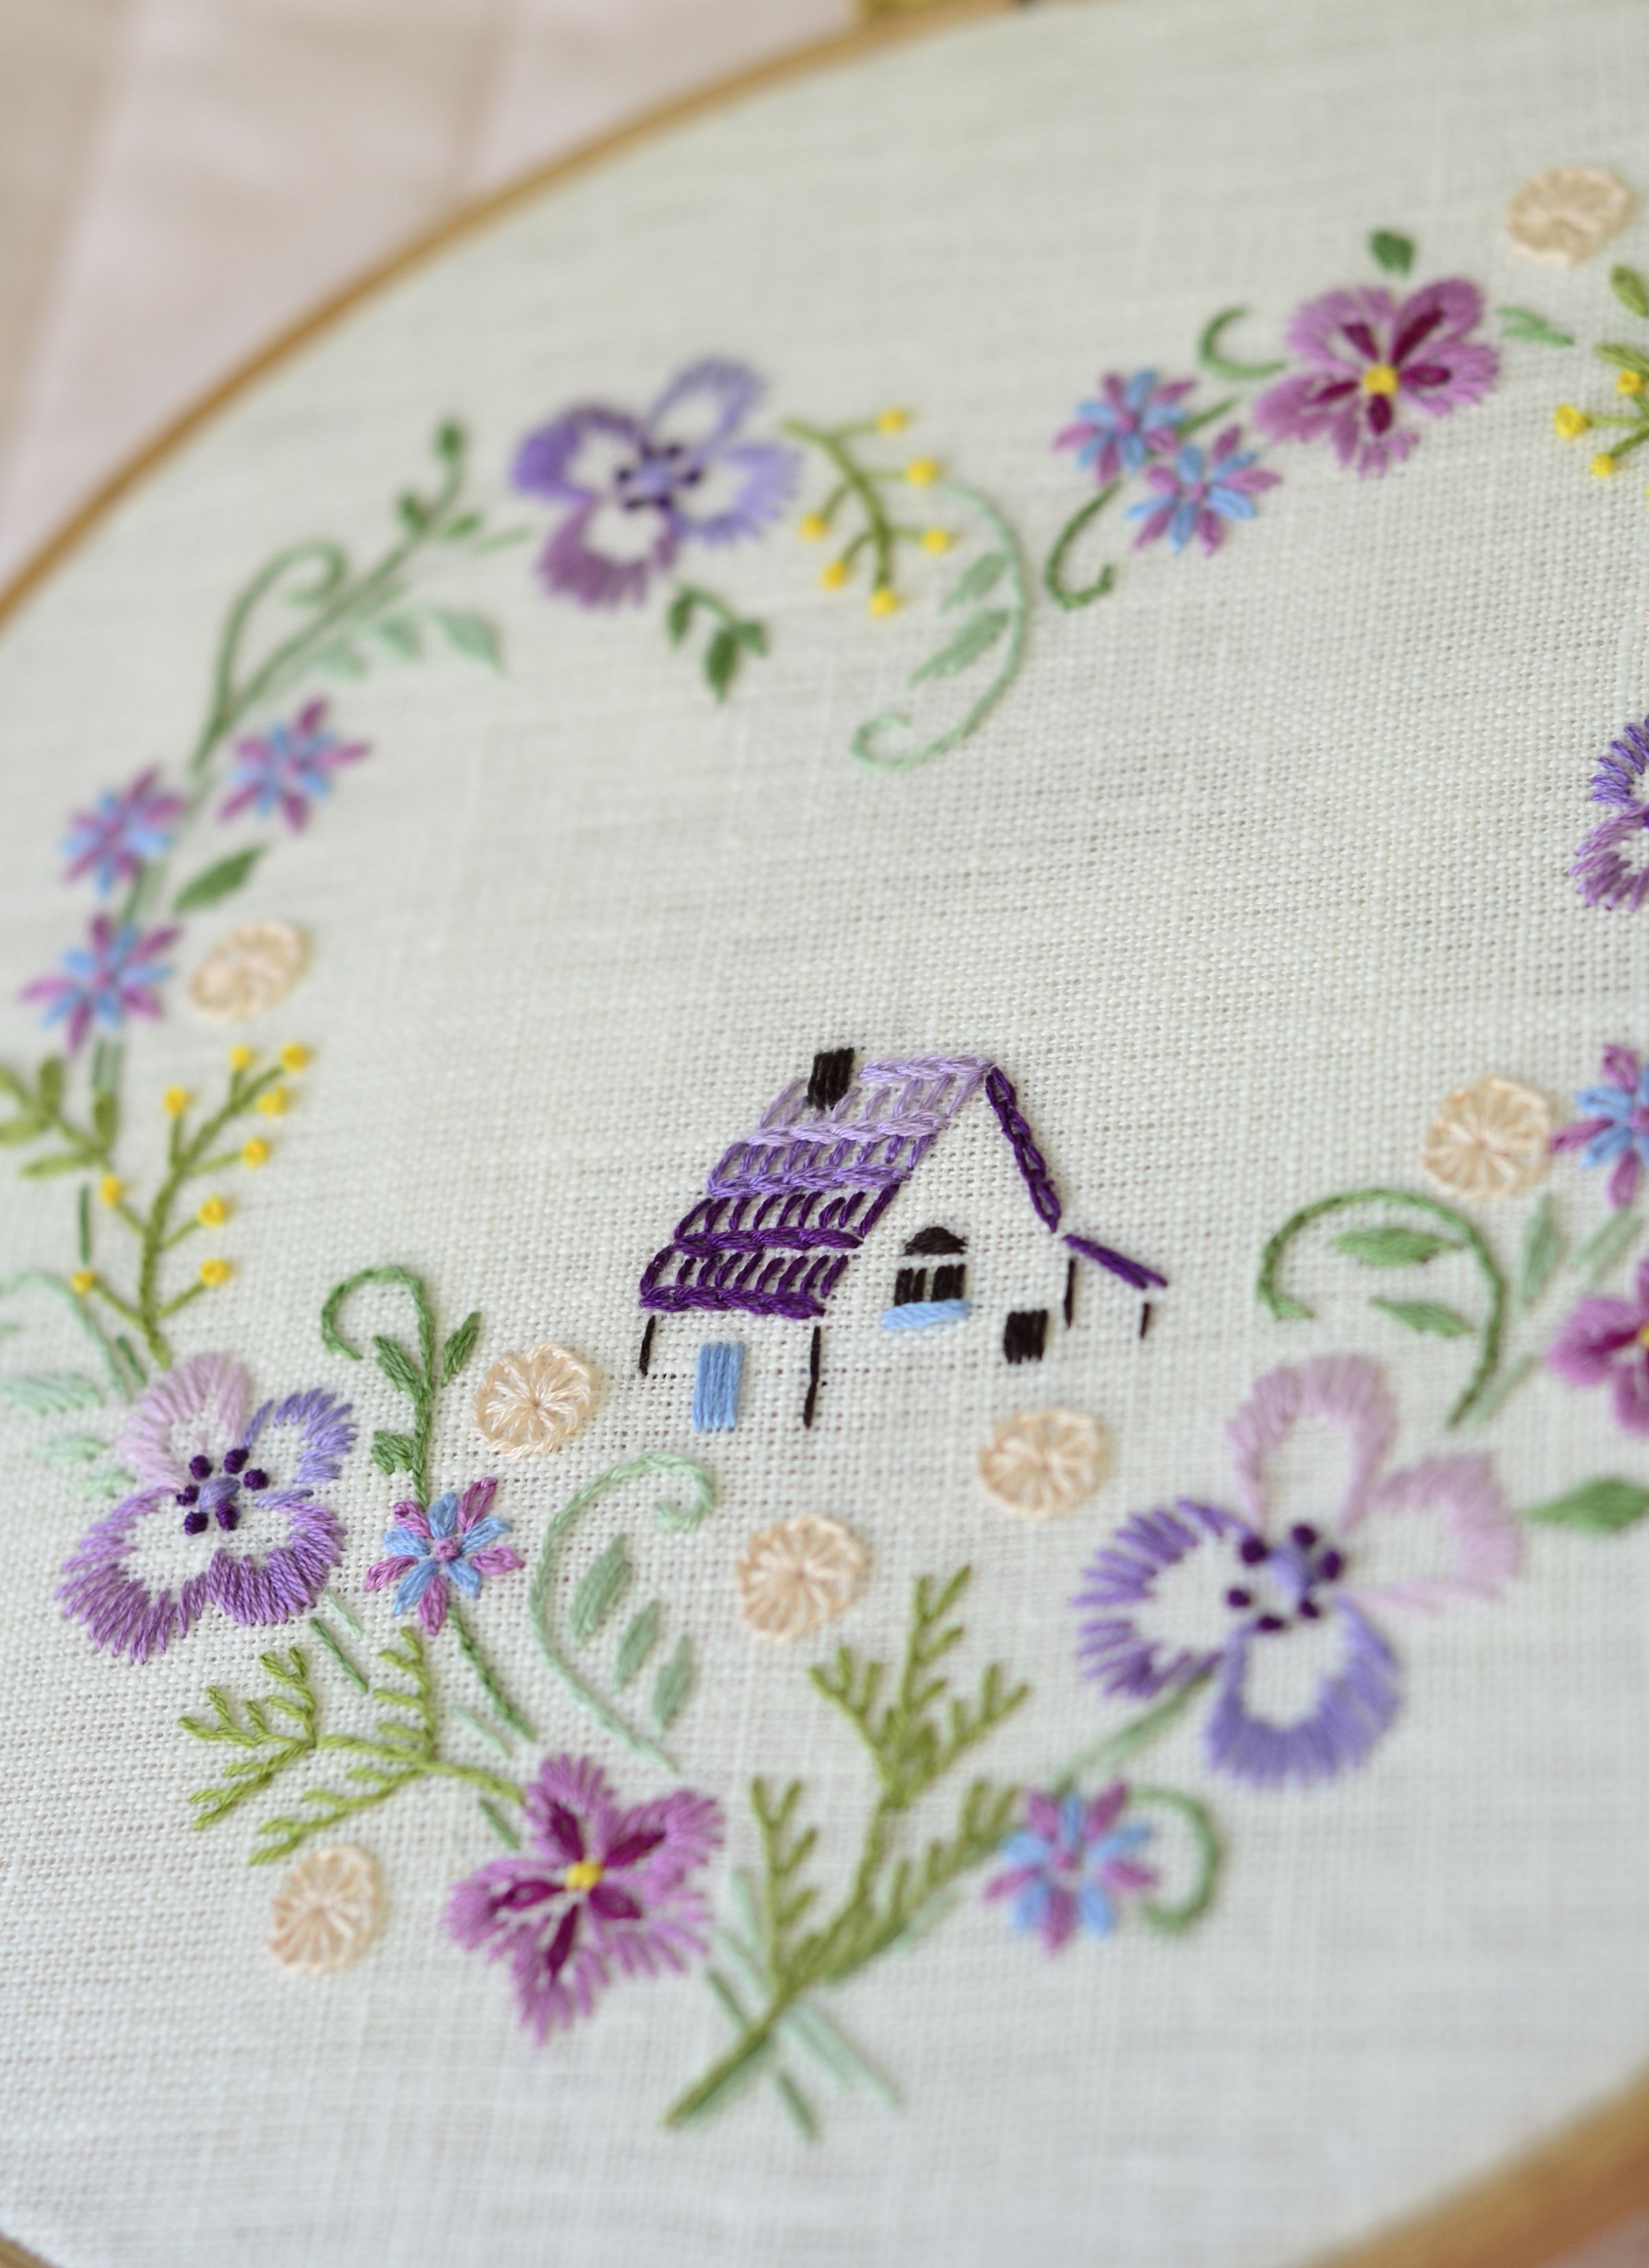 Embroidery pattern floral heart embroidery hand embroidery home